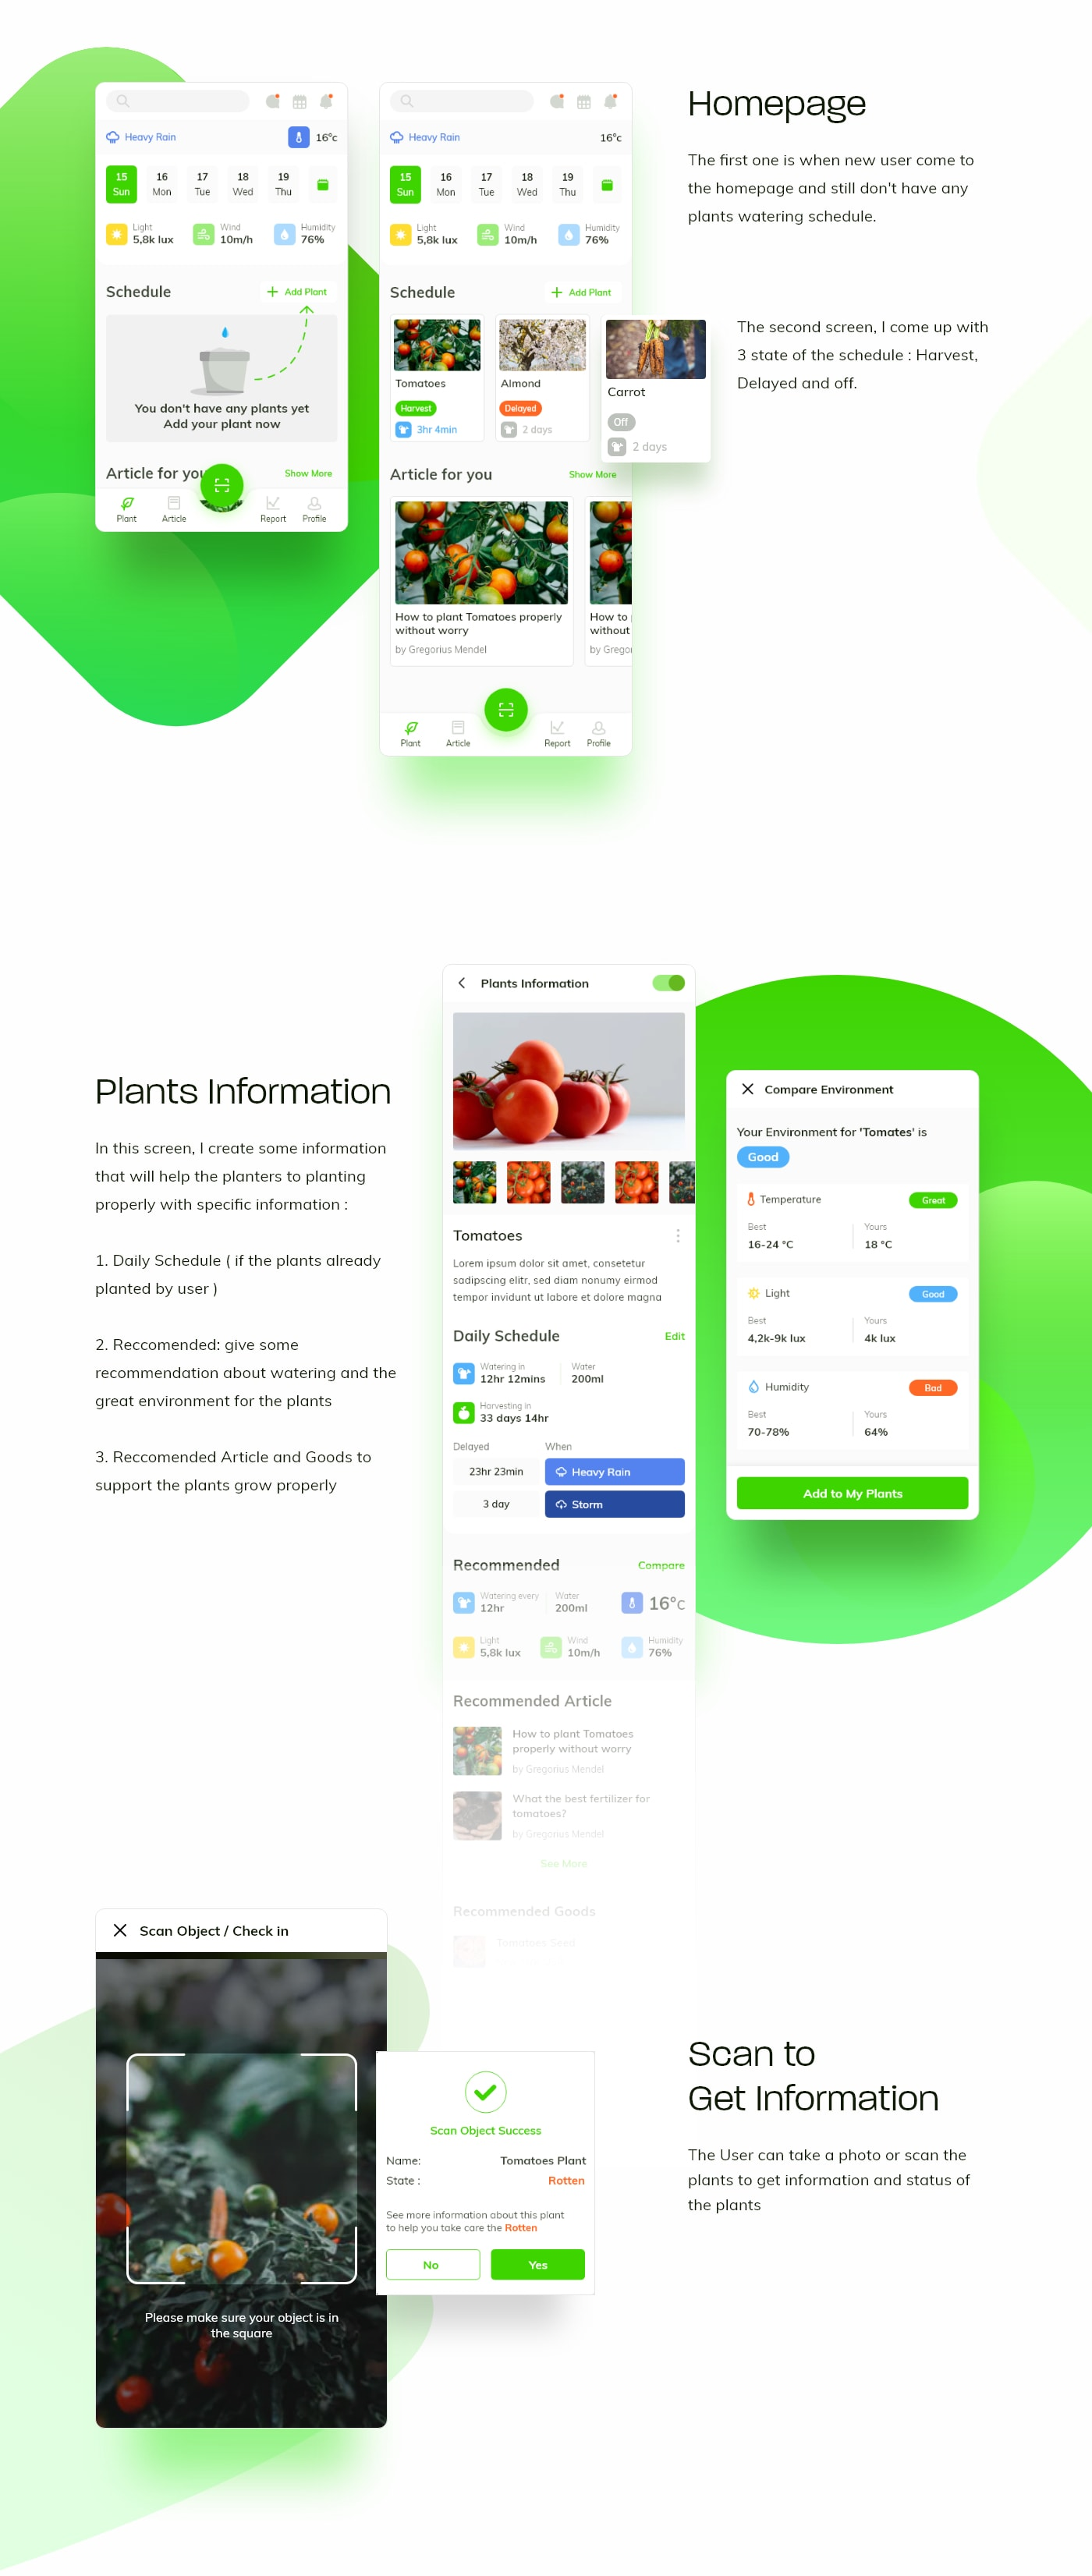 Waplant Plants - Free UI Kit for Adobe XD from UIGarage